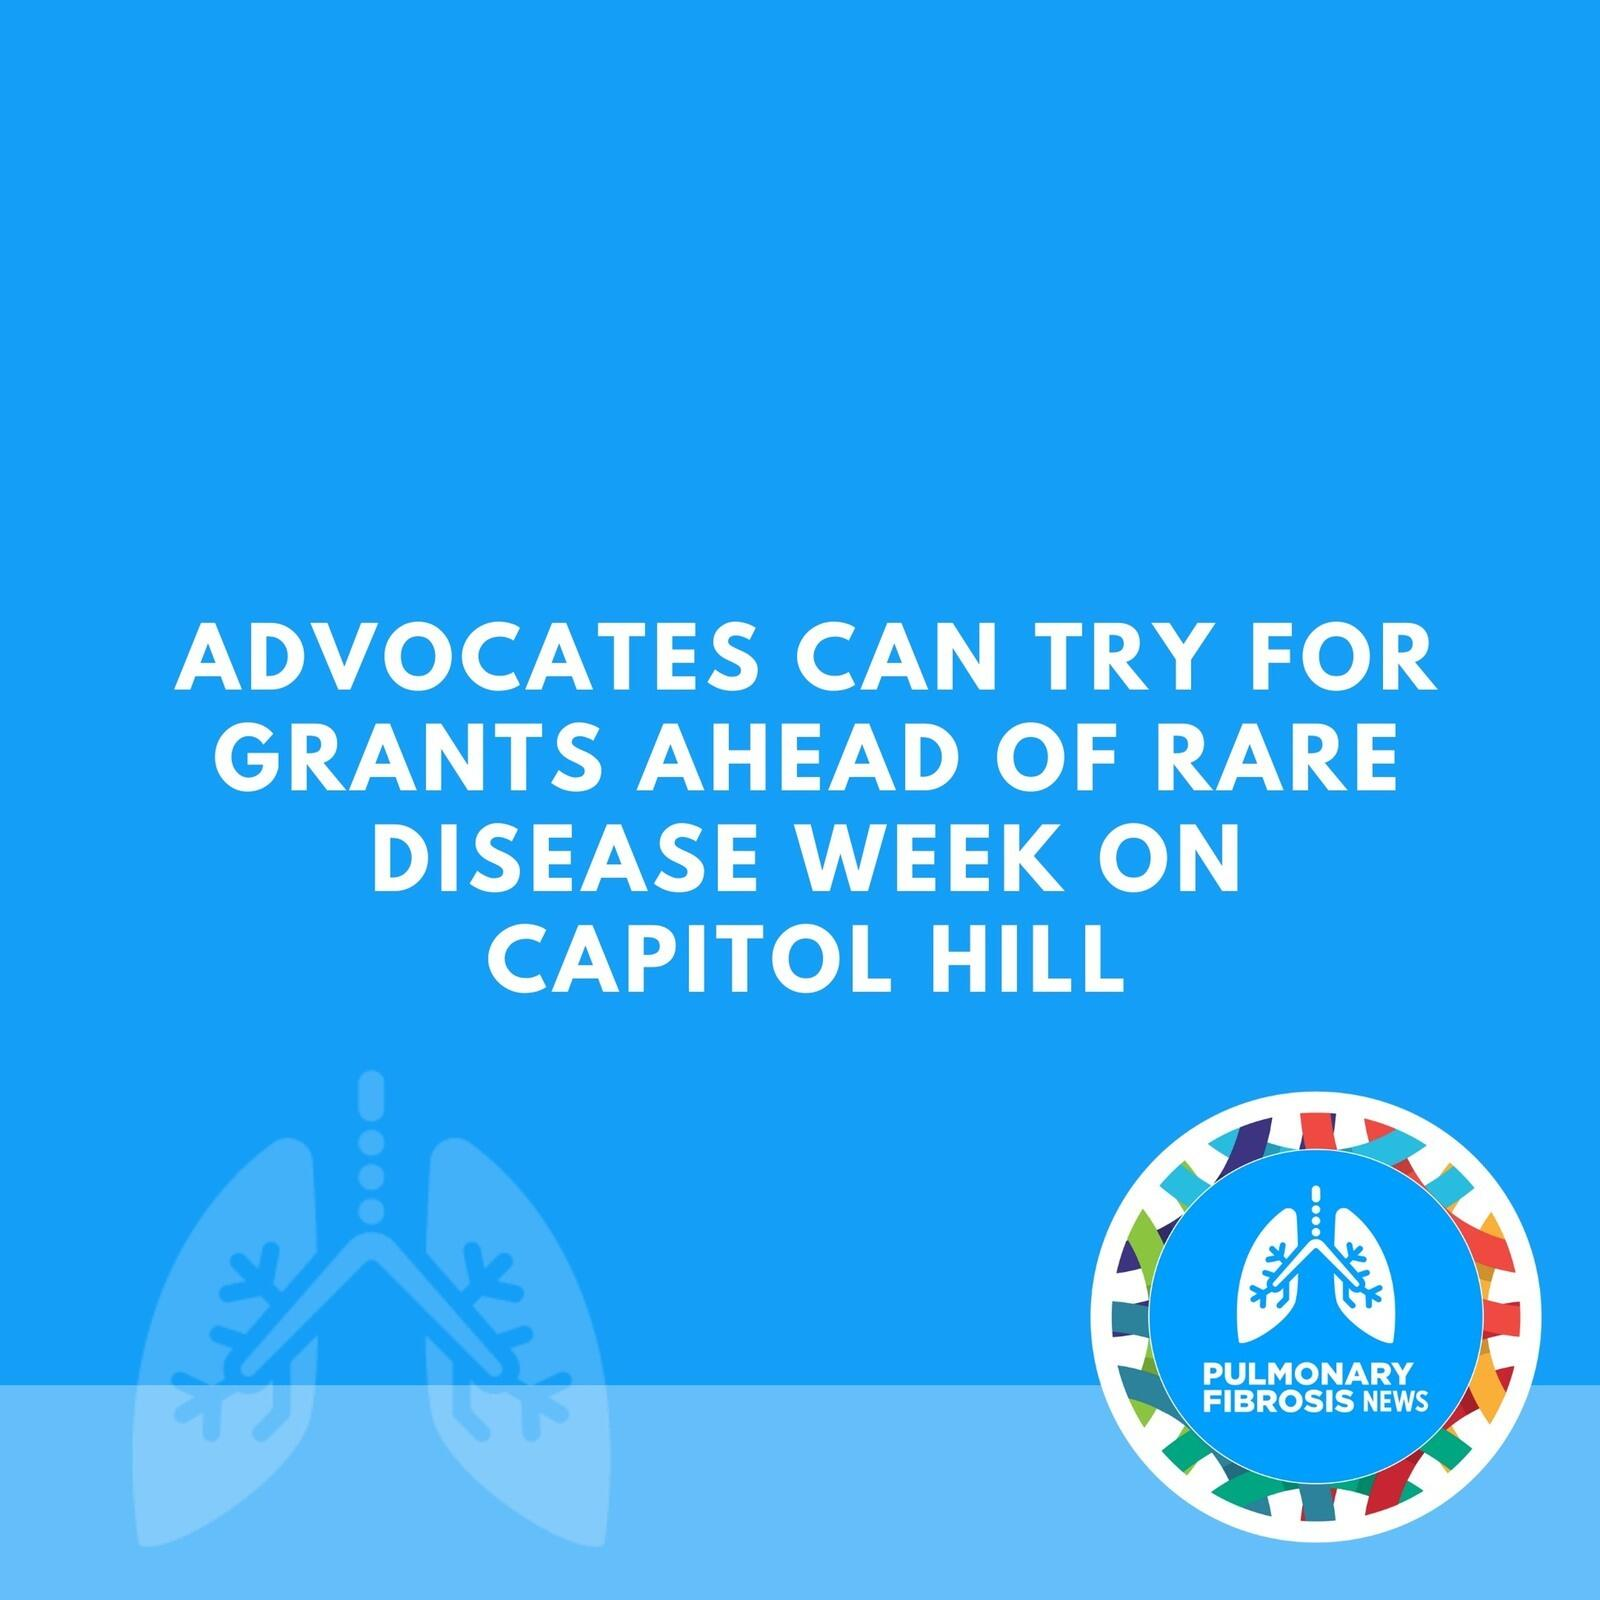 Advocates Can Try for Grants Ahead of Rare Disease Week on Capitol Hill